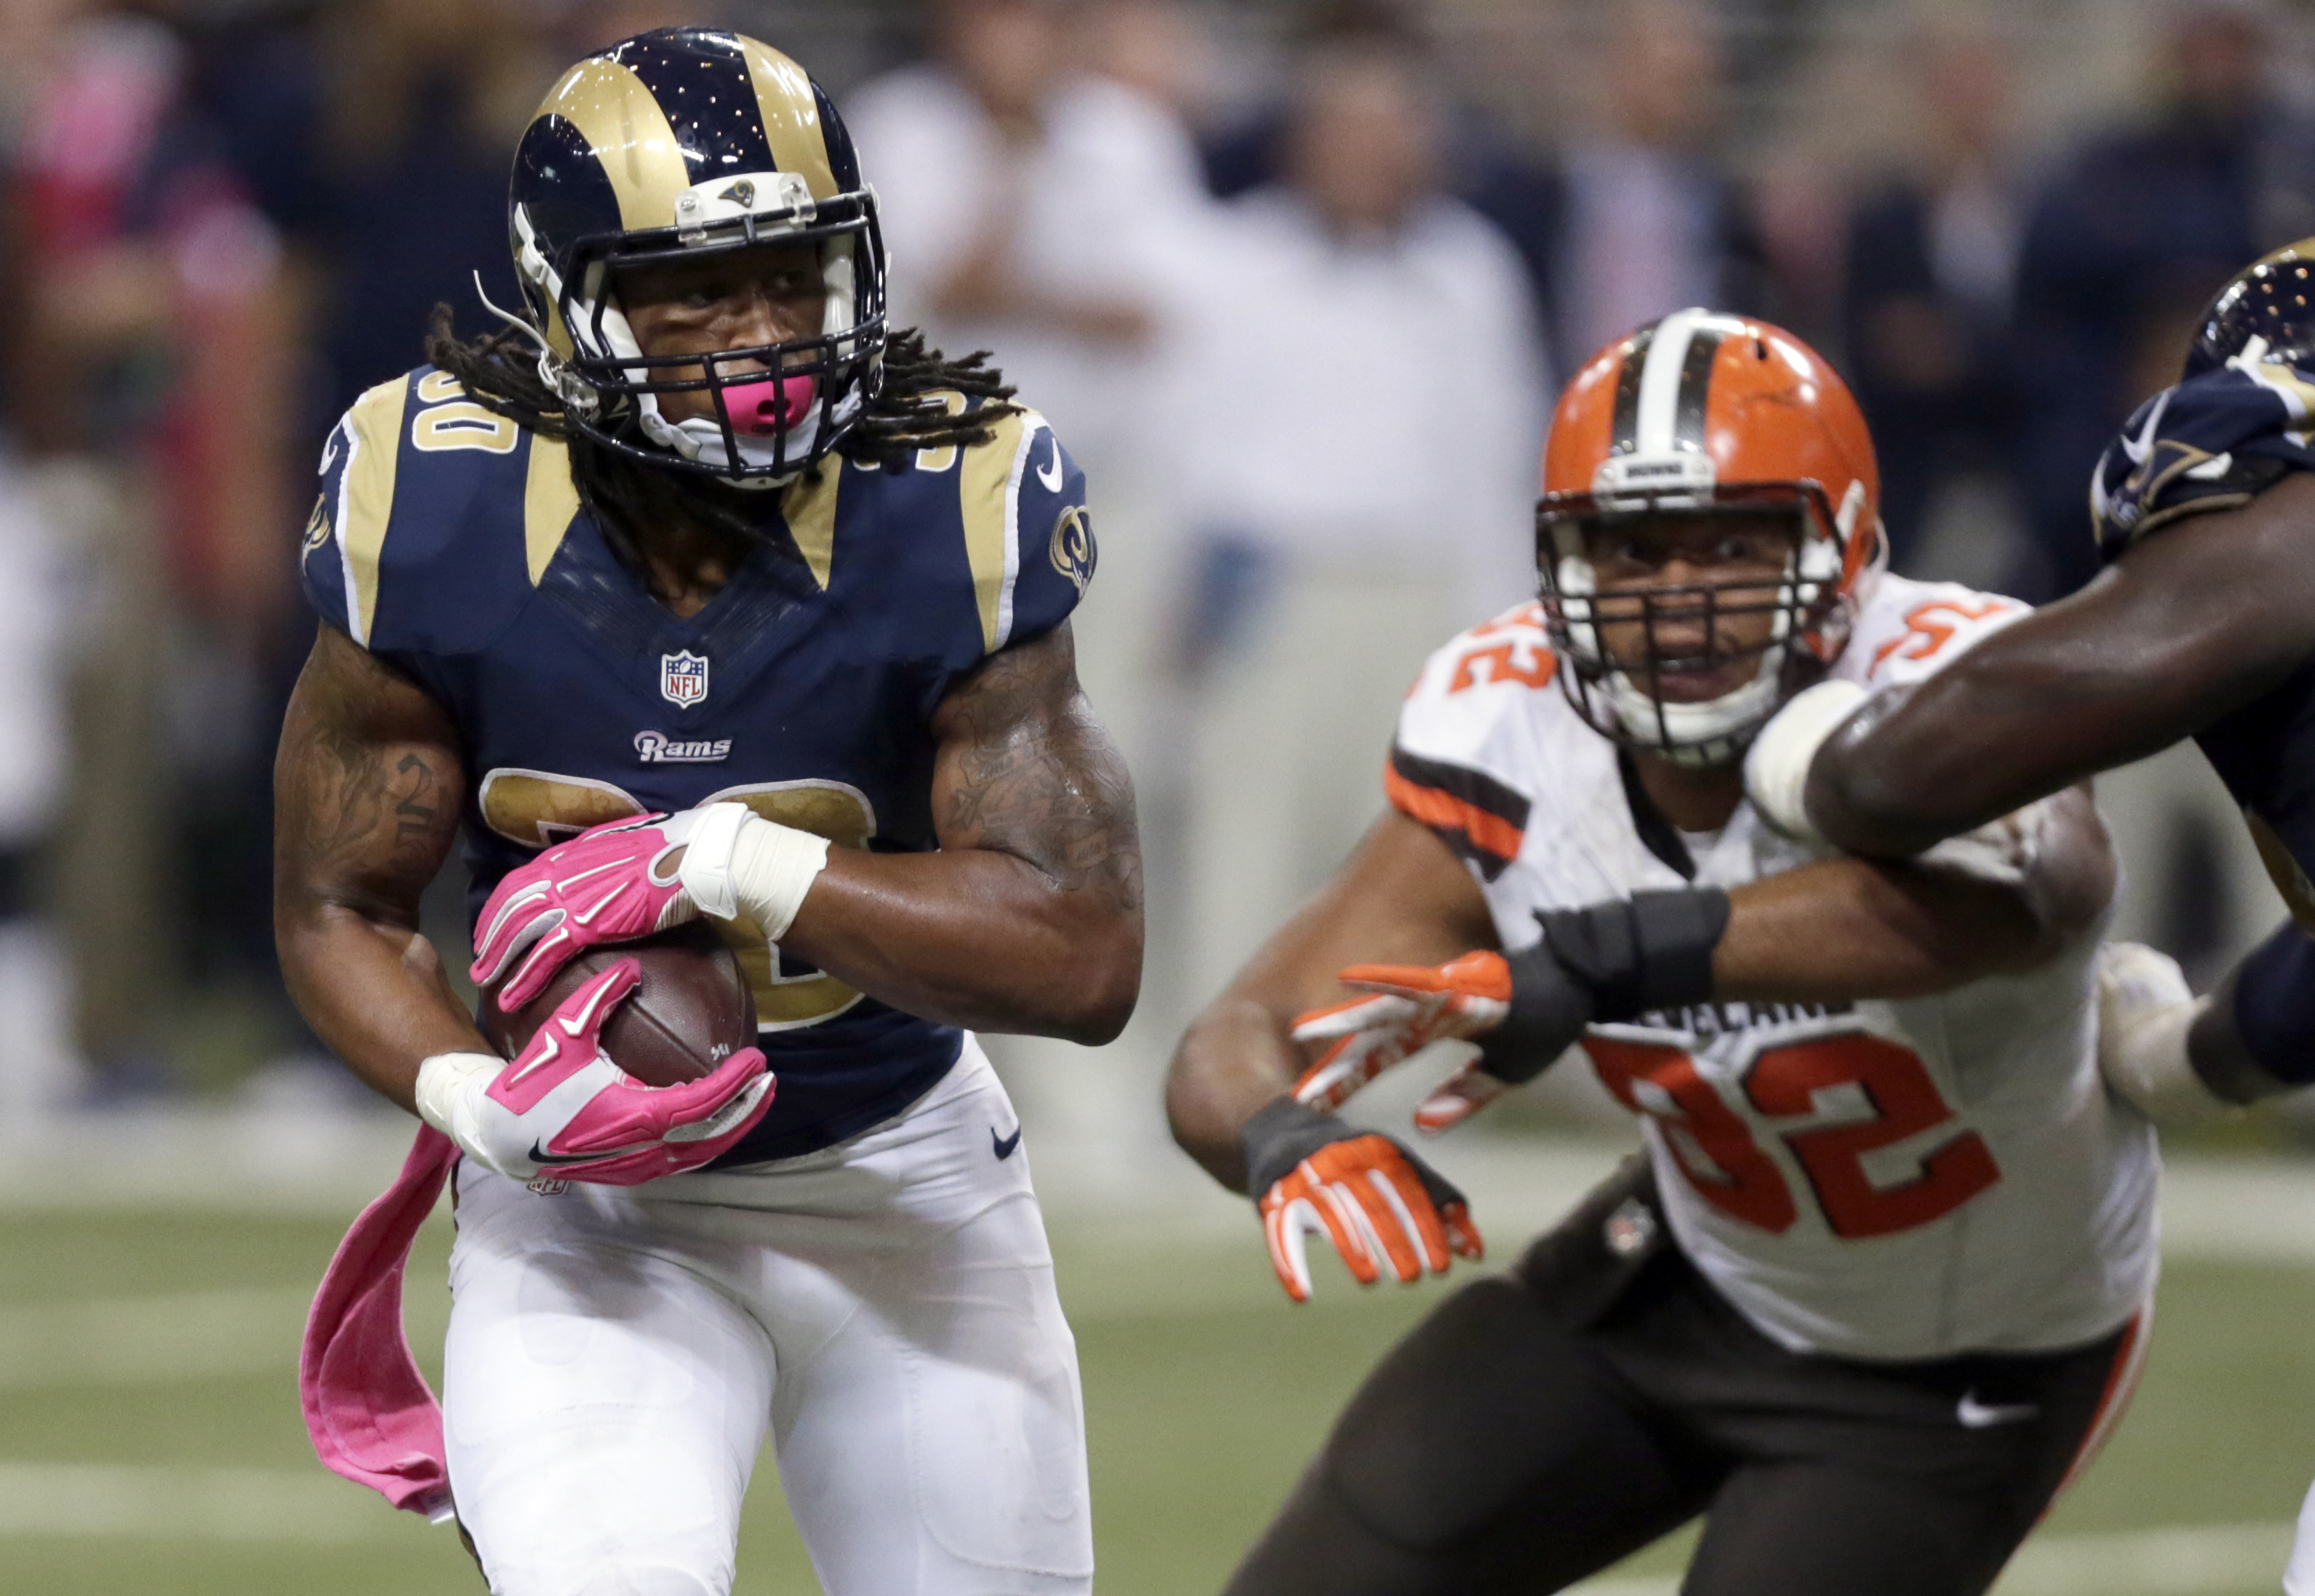 St. Louis Rams running back Todd Gurley, left, runs past Cleveland Browns defensive end Desmond Bryant on his way to a 16-yard touchdown run during the fourth quarter of an NFL football game Sunday, Oct. 25, 2015, in St. Louis. (AP Photo/Tom Gannam)